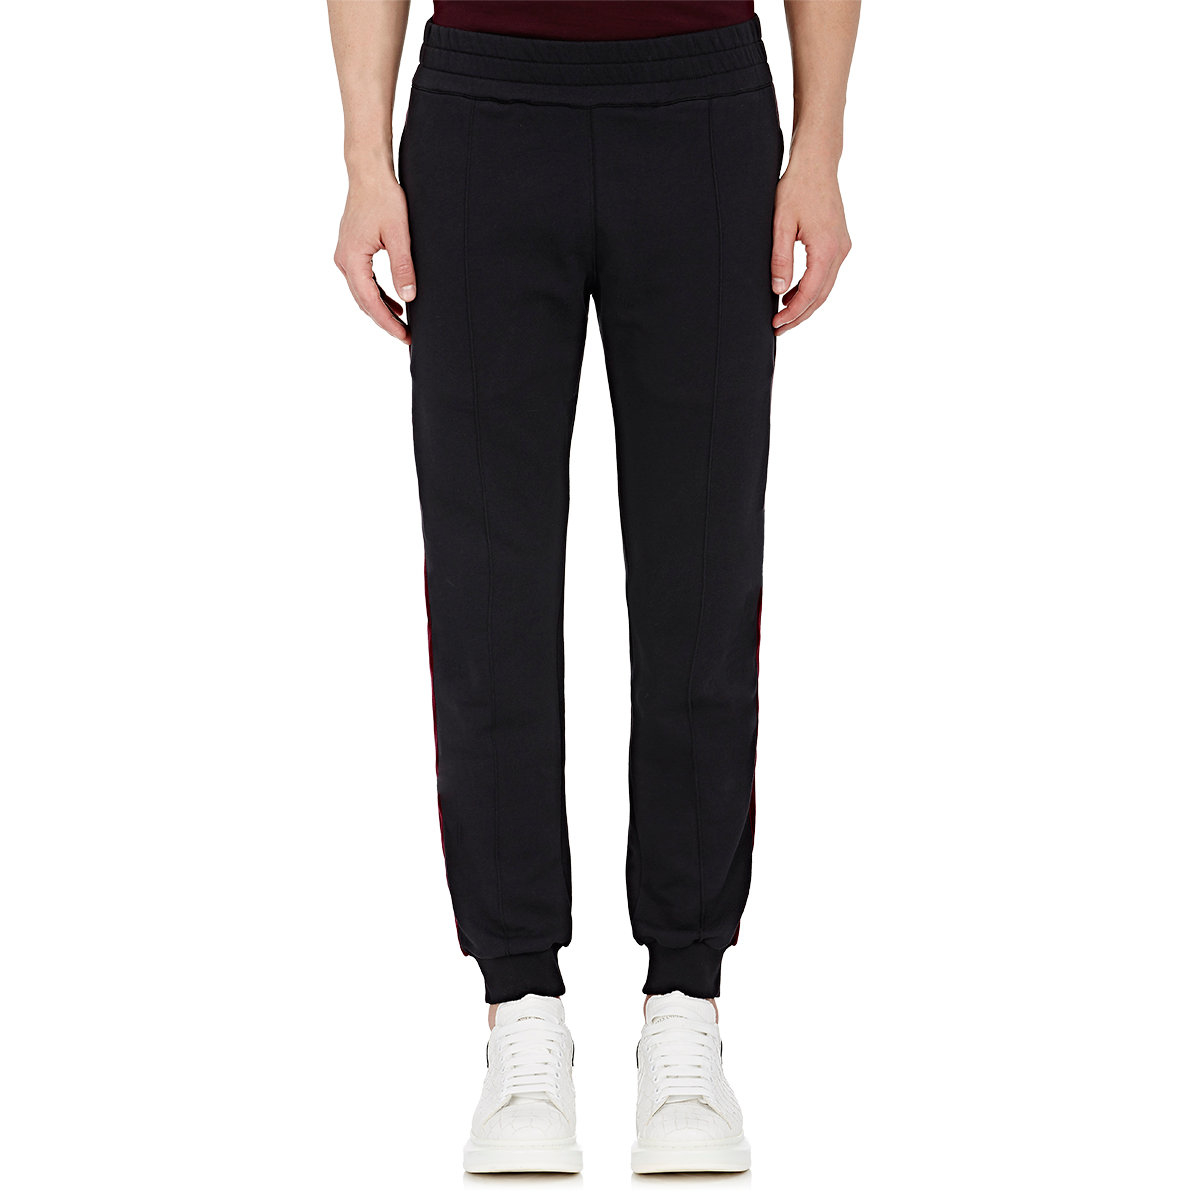 Shop for jogger pants cotton on online at Target. Free shipping on purchases over $35 and save 5% every day with your Target REDcard.